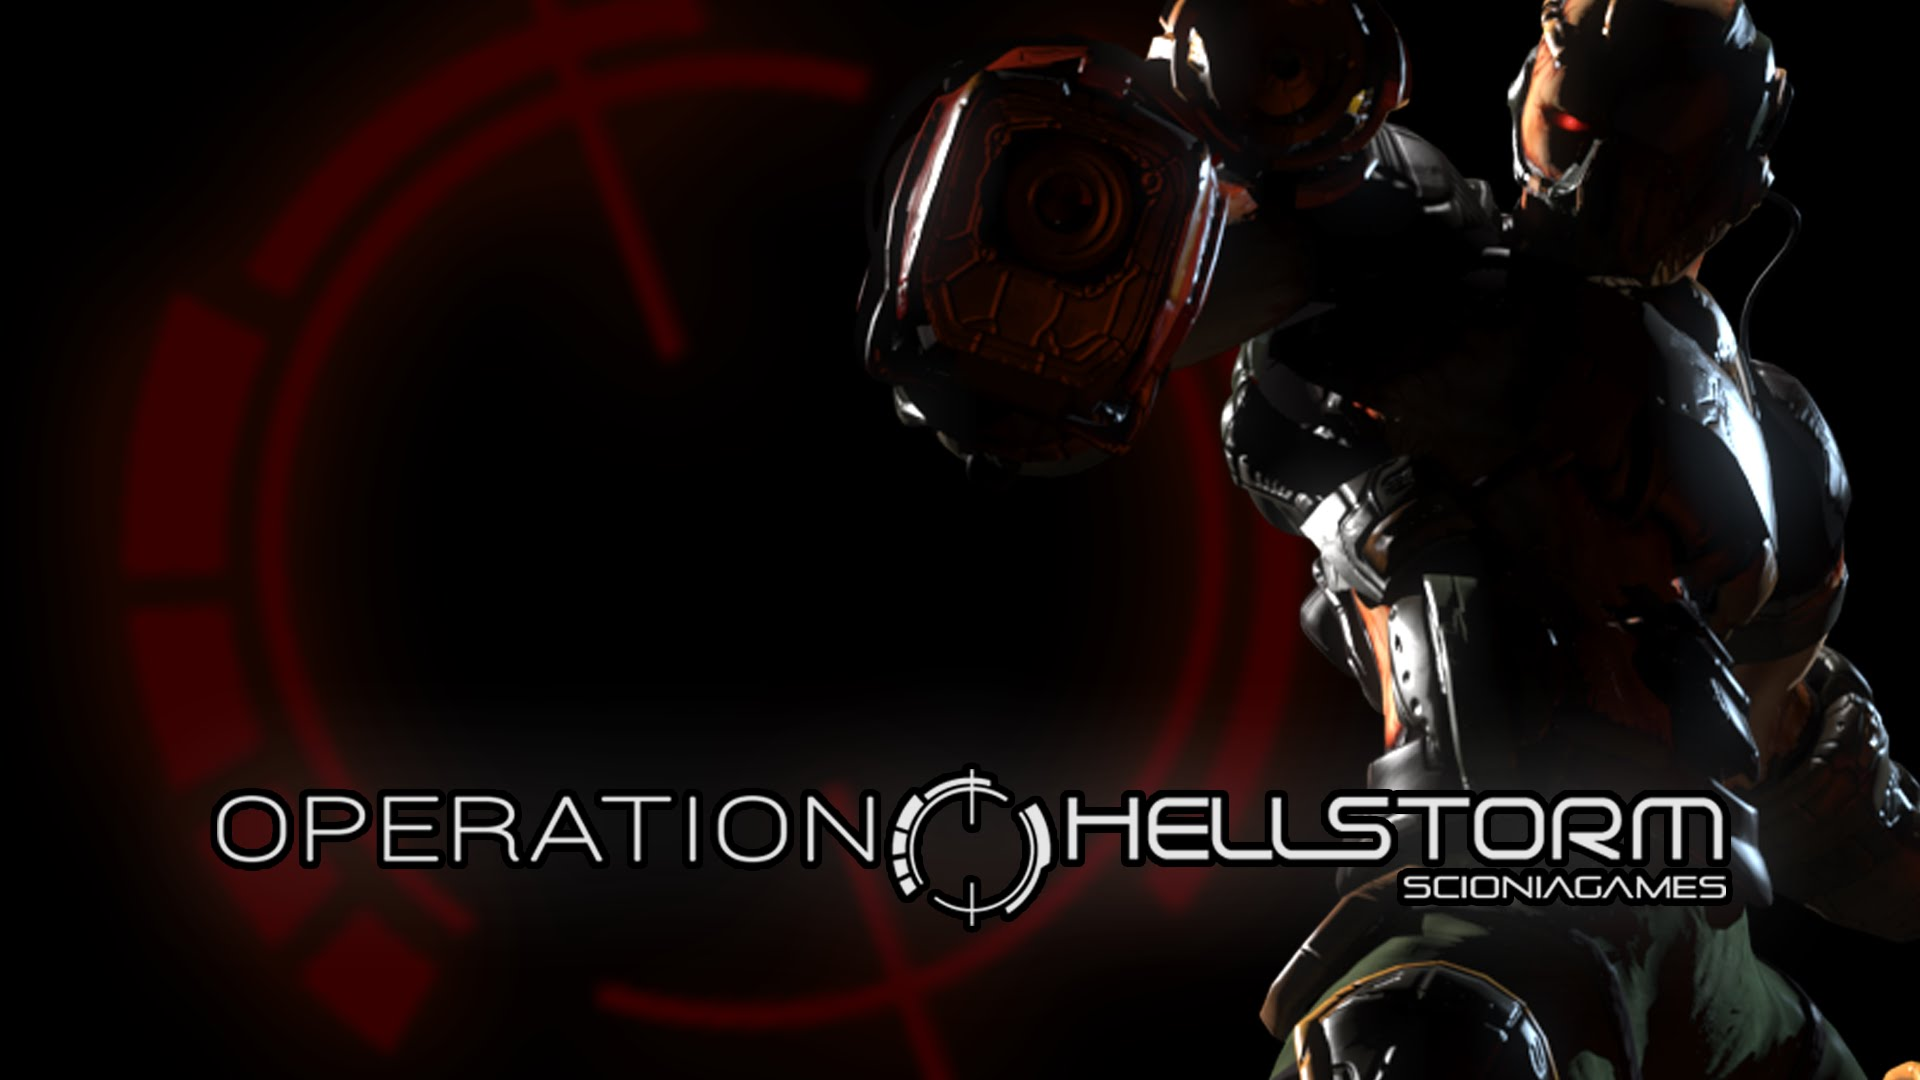 Operation Hellstorm FPS - Concept Teaser Trailer